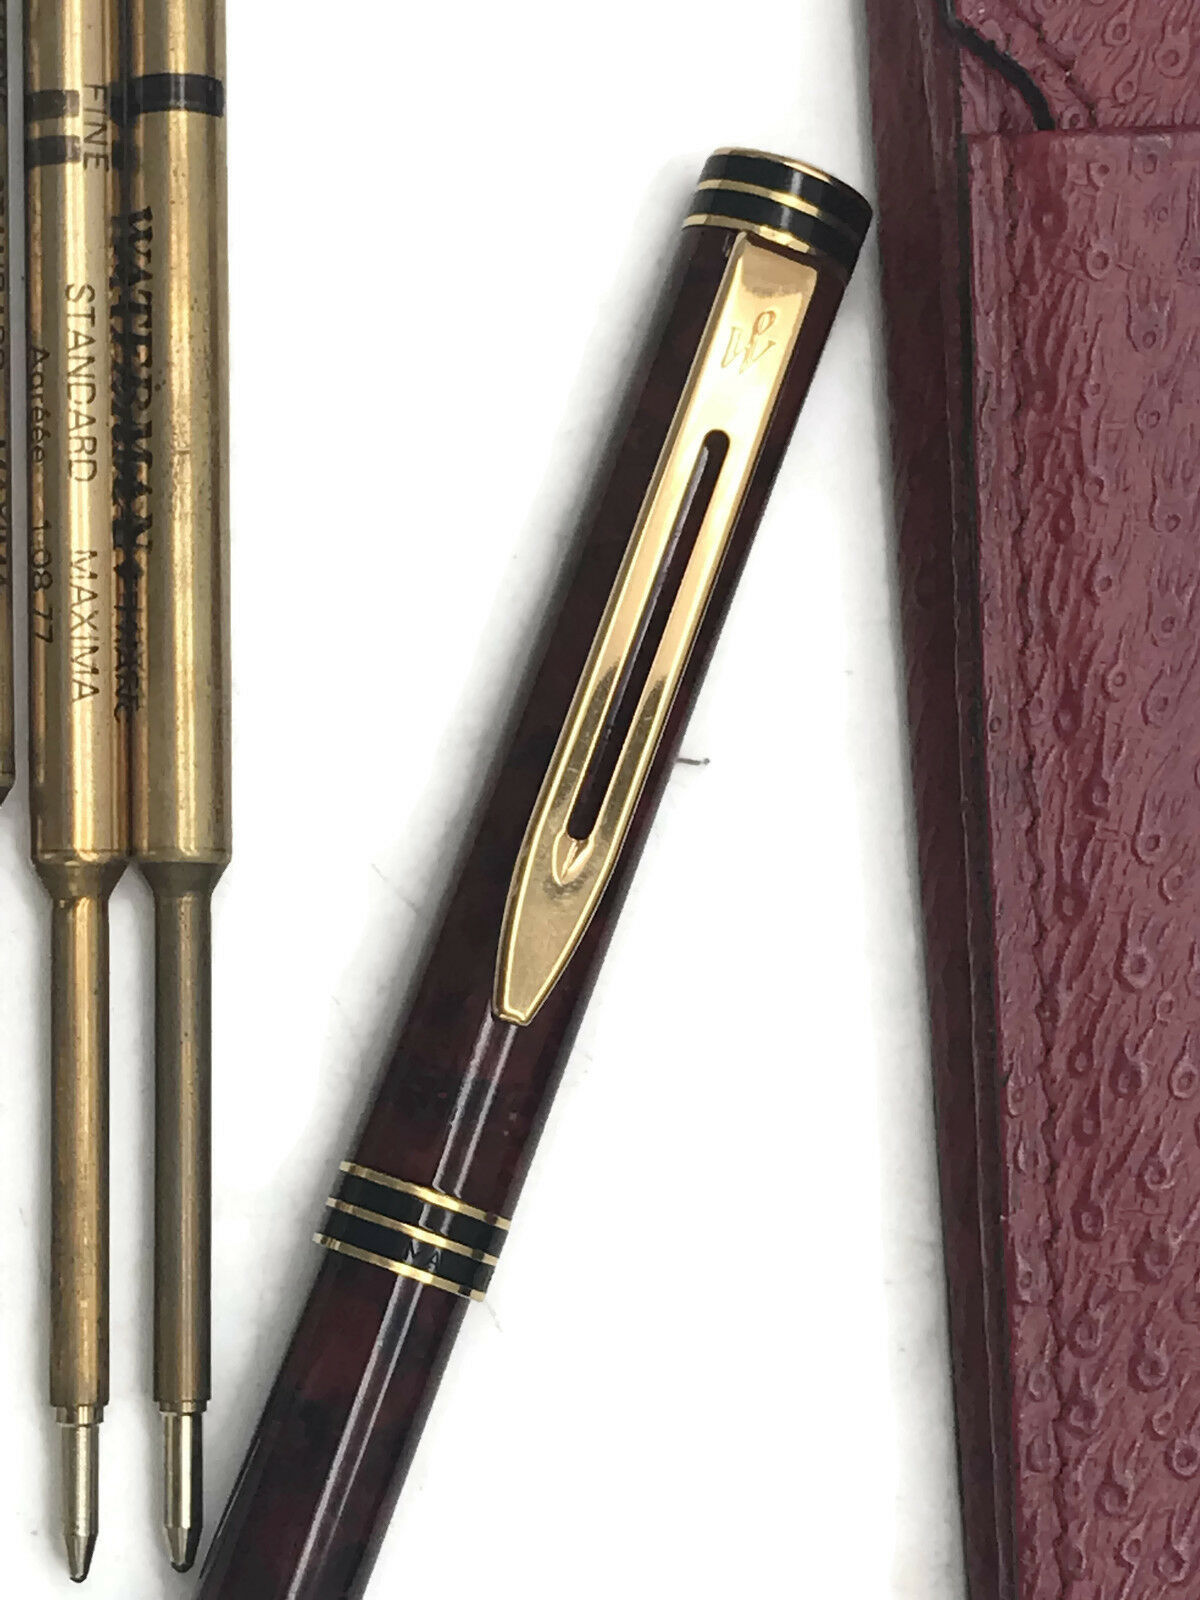 Vintage Watermann Ballpoint Pen In Red Exotic Leather Soft Cigar Case W/ Refills